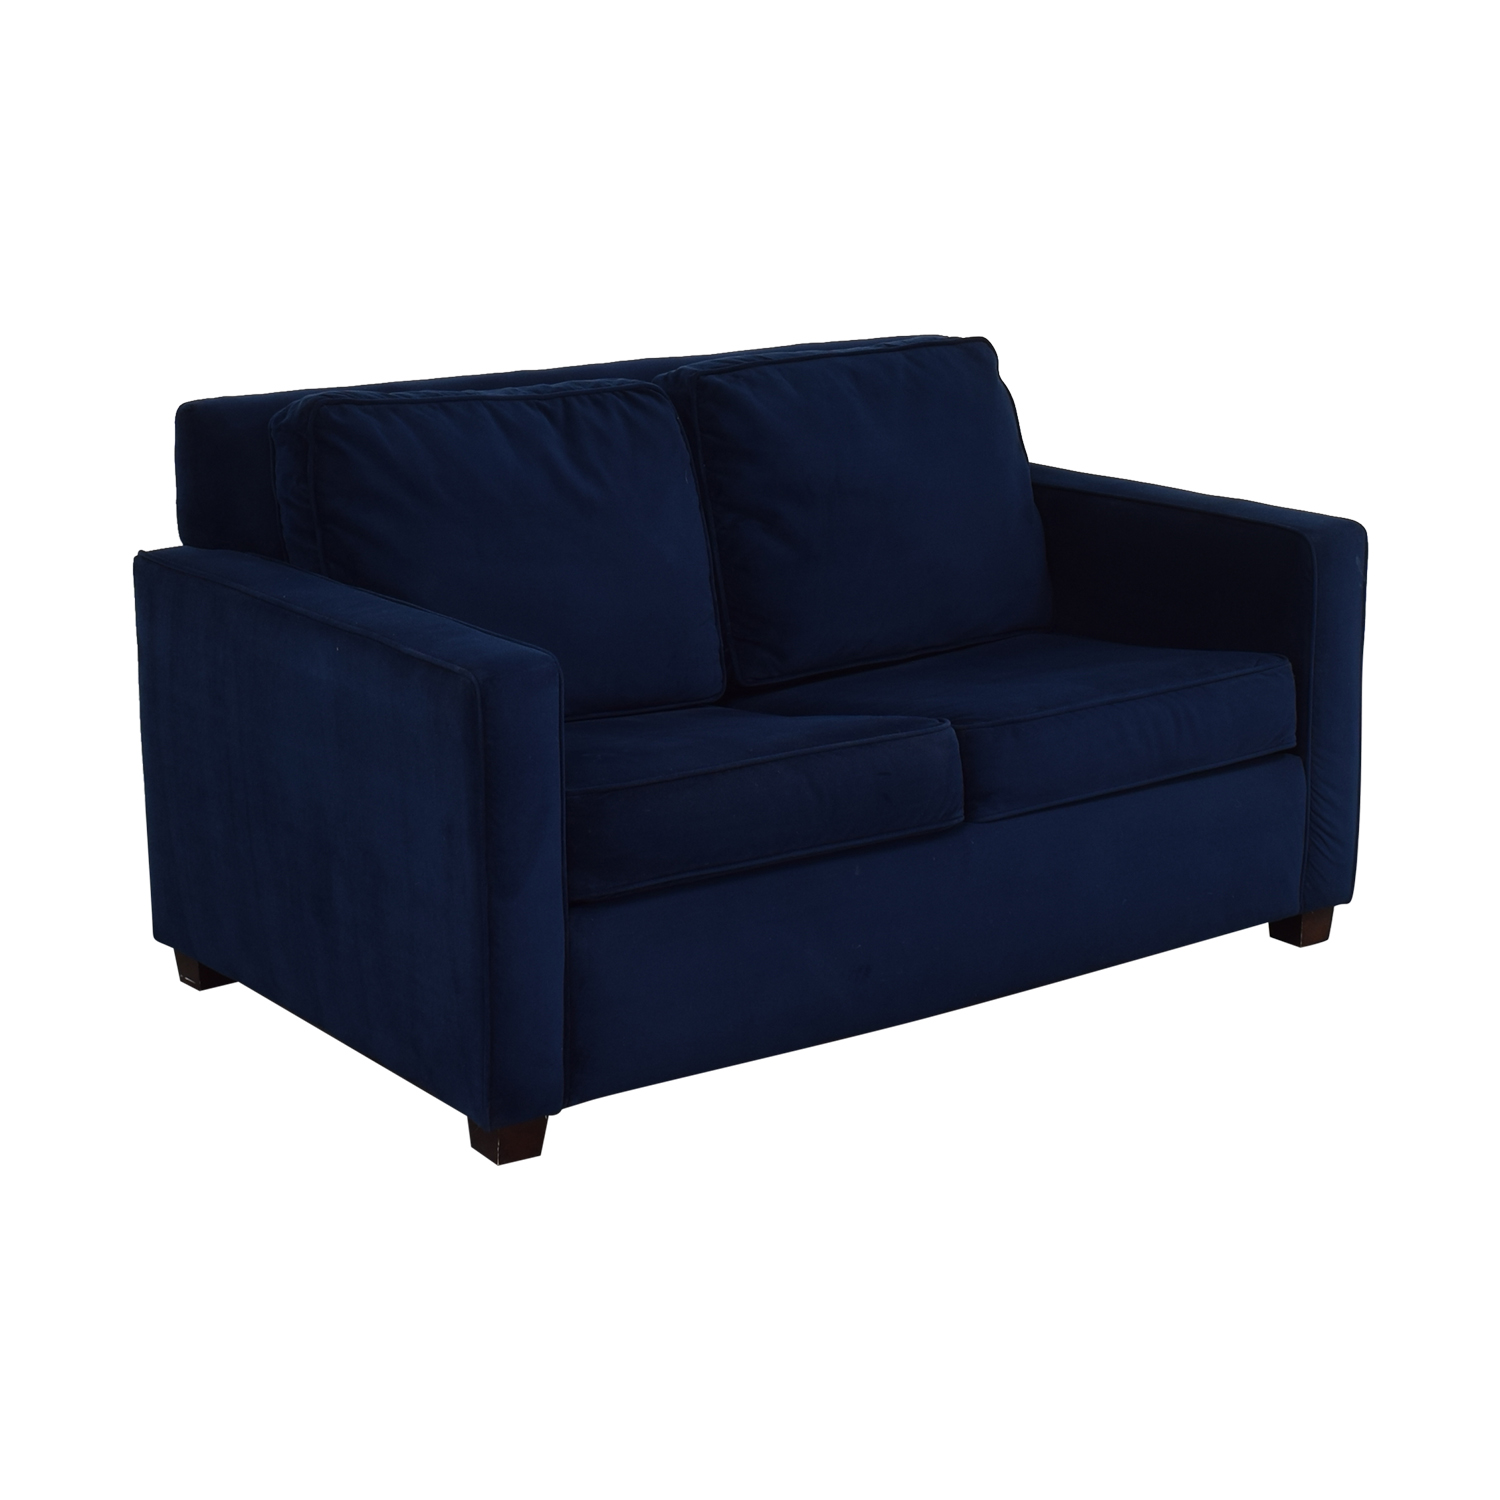 West Elm West Elm Henry Twin Sleeper Sofa coupon